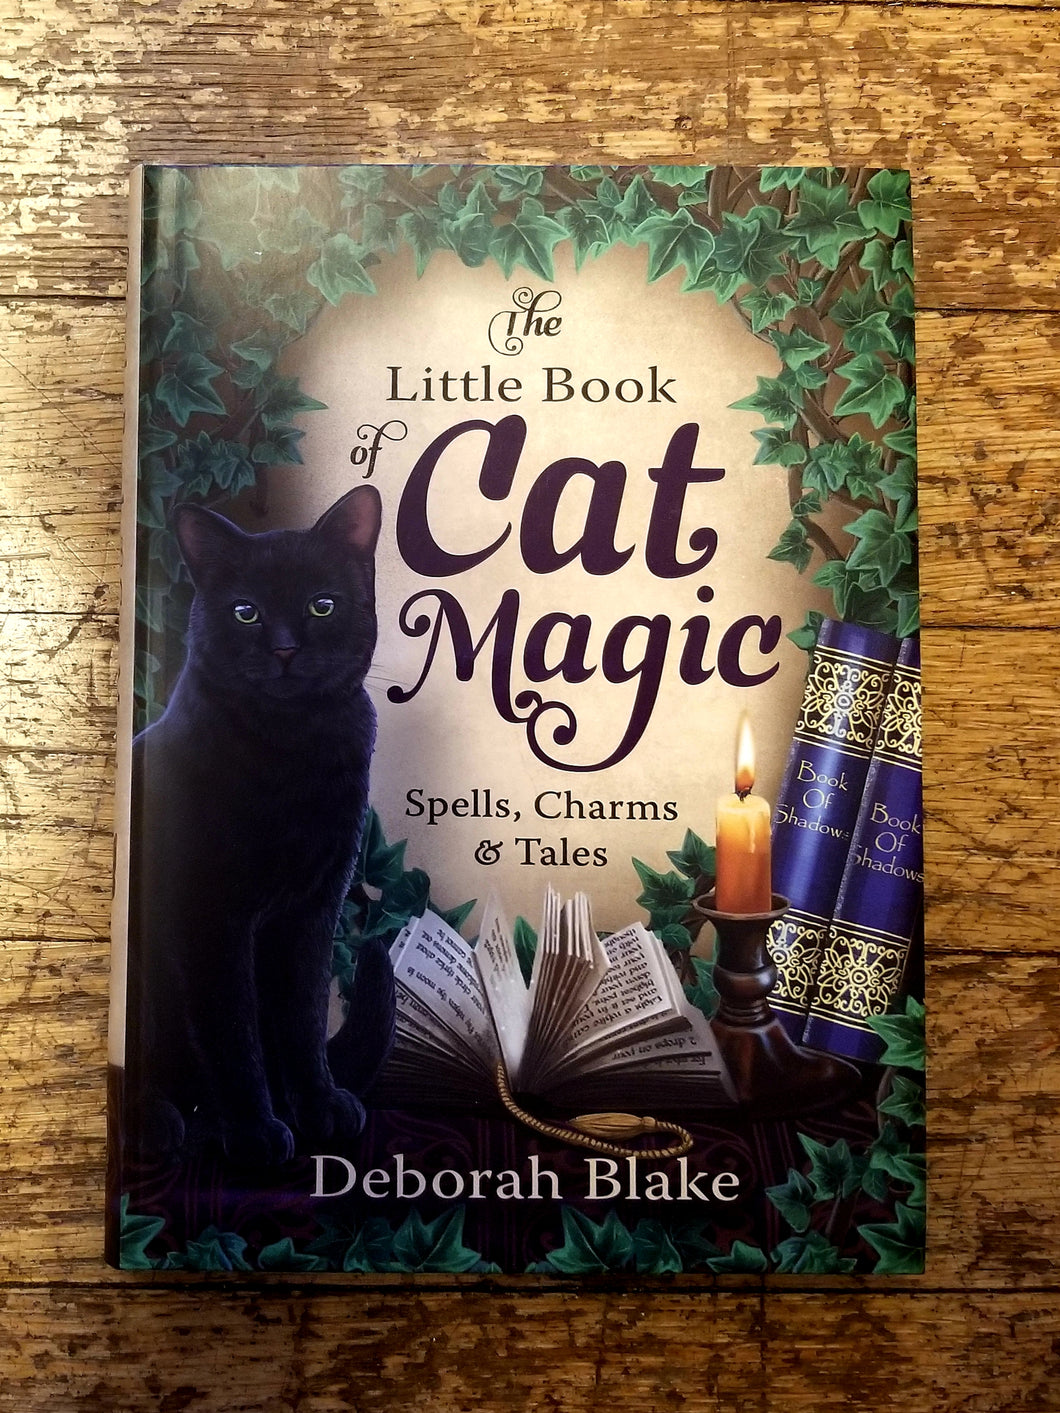 The Little Book of Cat Magic: Spells, Charms & Tales by Deborah Blake